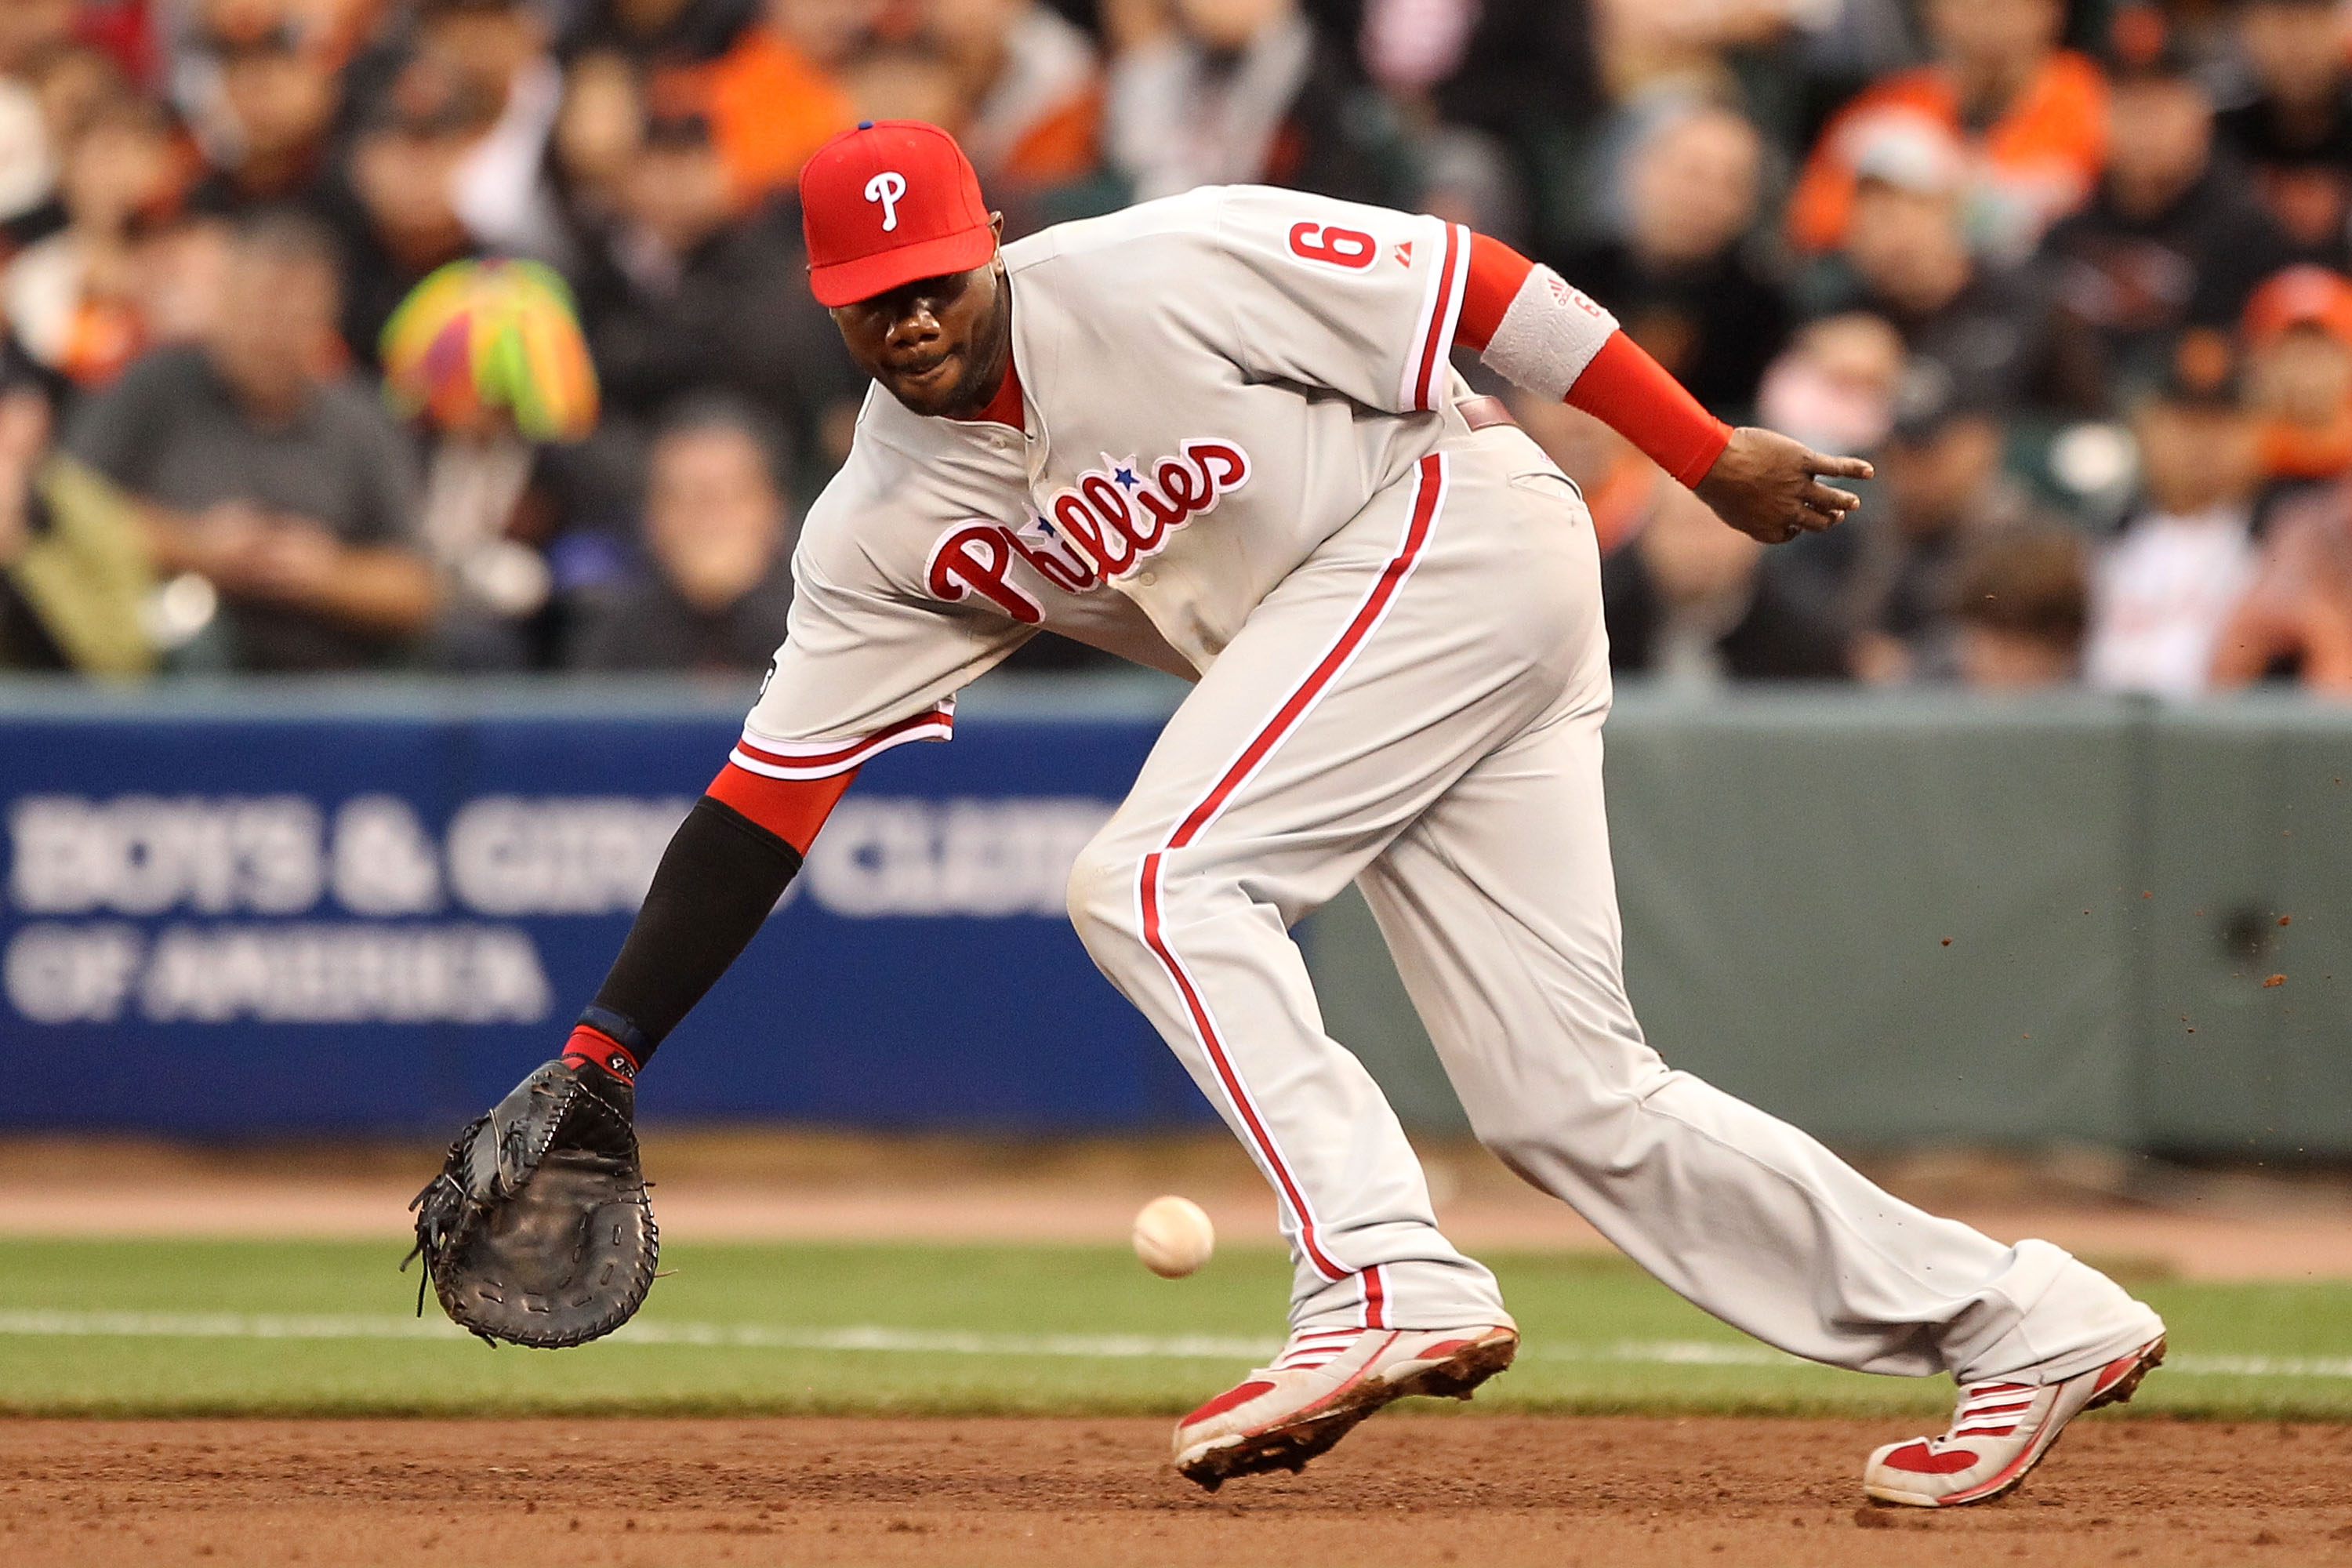 SAN FRANCISCO - OCTOBER 21:  Ryan Howard #6 of the Philadelphia Phillies fields a ball against the San Francisco Giants in Game Five of the NLCS during the 2010 MLB Playoffs at AT&T Park on October 21, 2010 in San Francisco, California.  (Photo by Ezra Sh